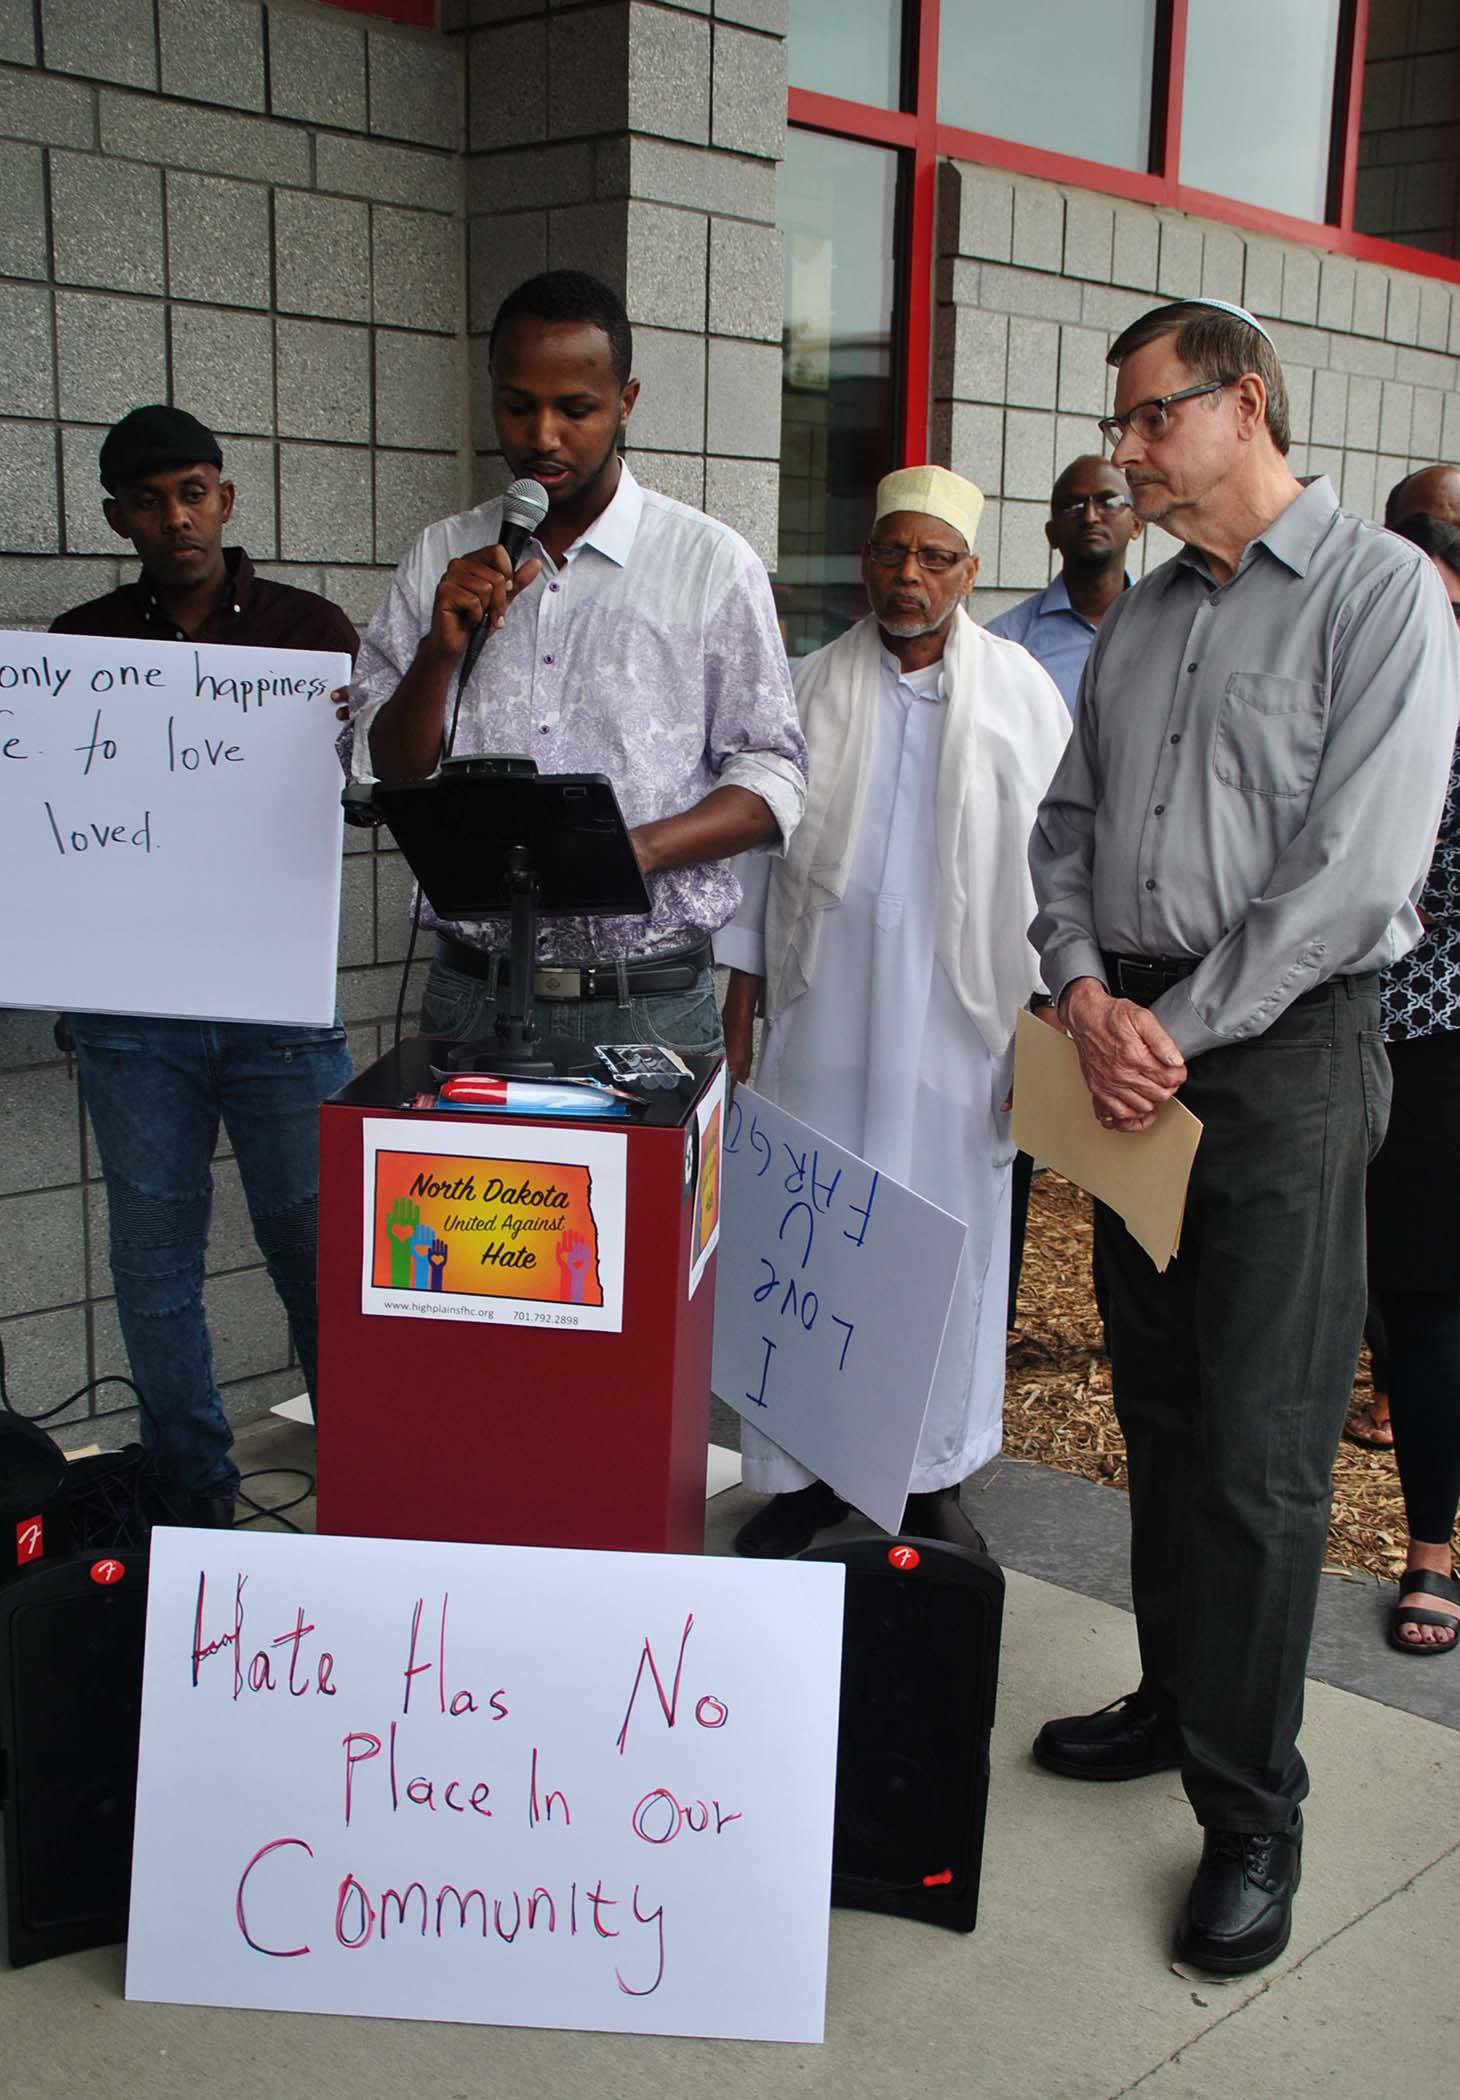 Hukun Abdullahi and David Myers at the rally - photo by C.S. Hagen